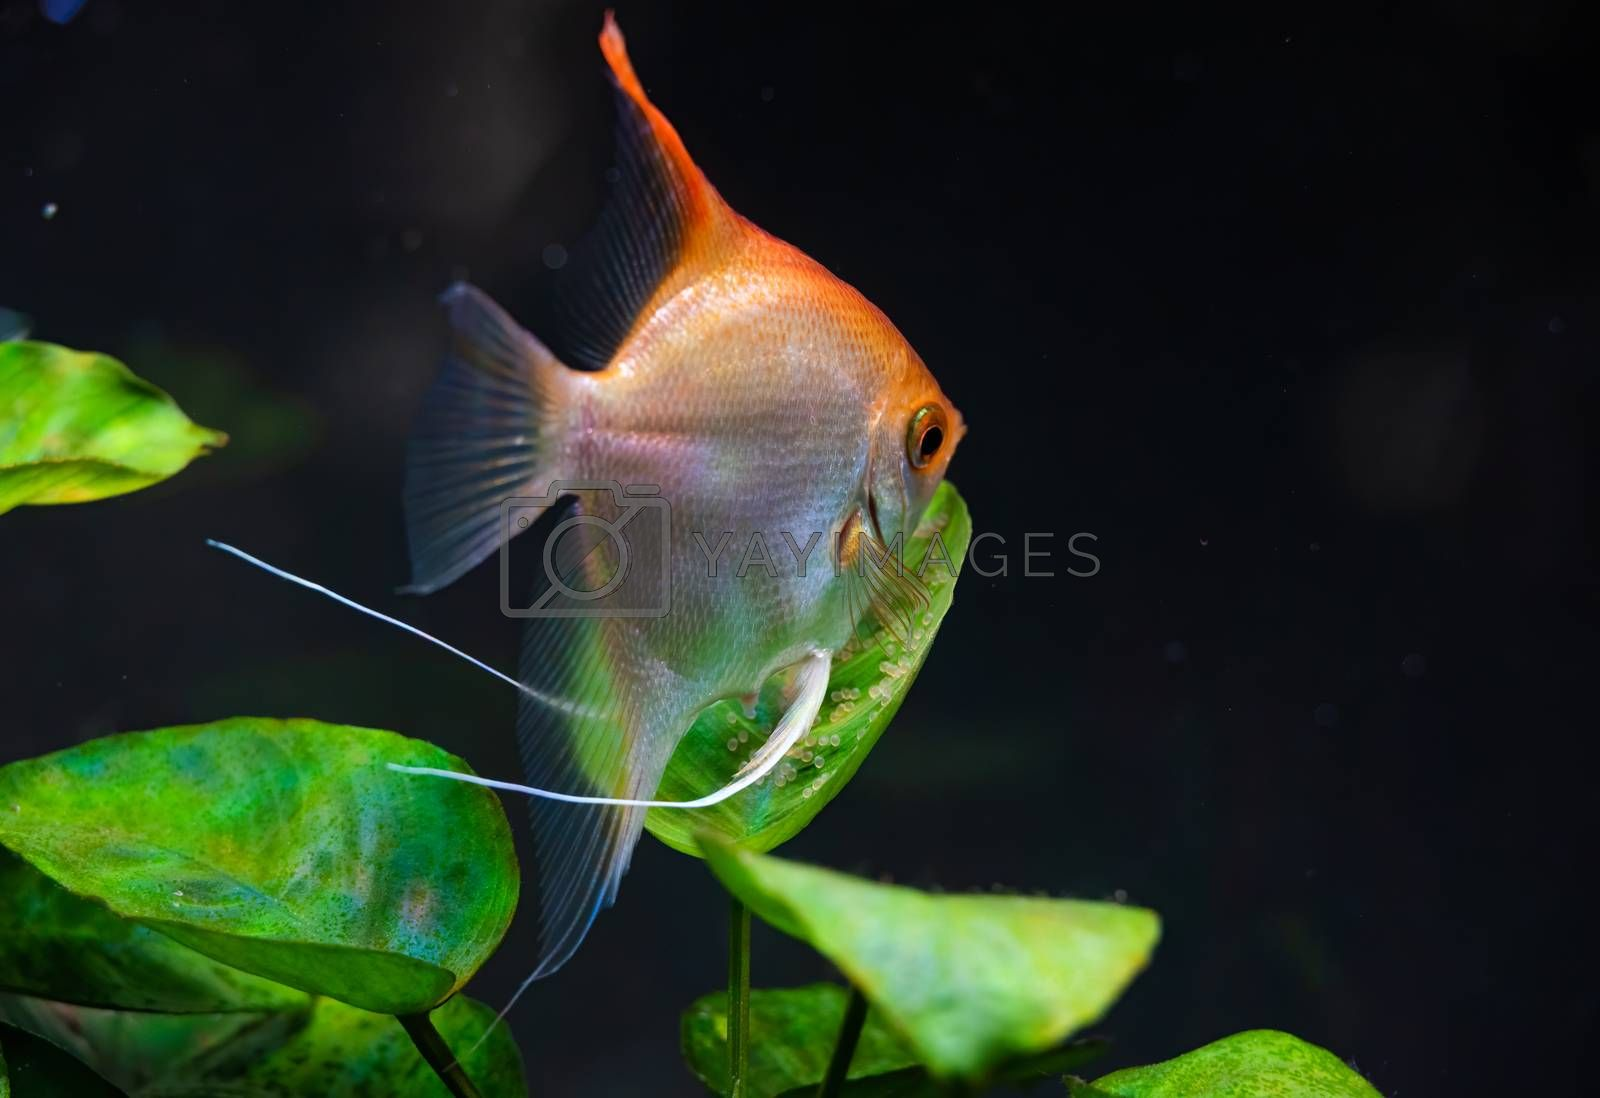 Gold Pterophyllum Scalare in aqarium, yellow angelfish guarding eggs. Roe on the leaf. Selective focus